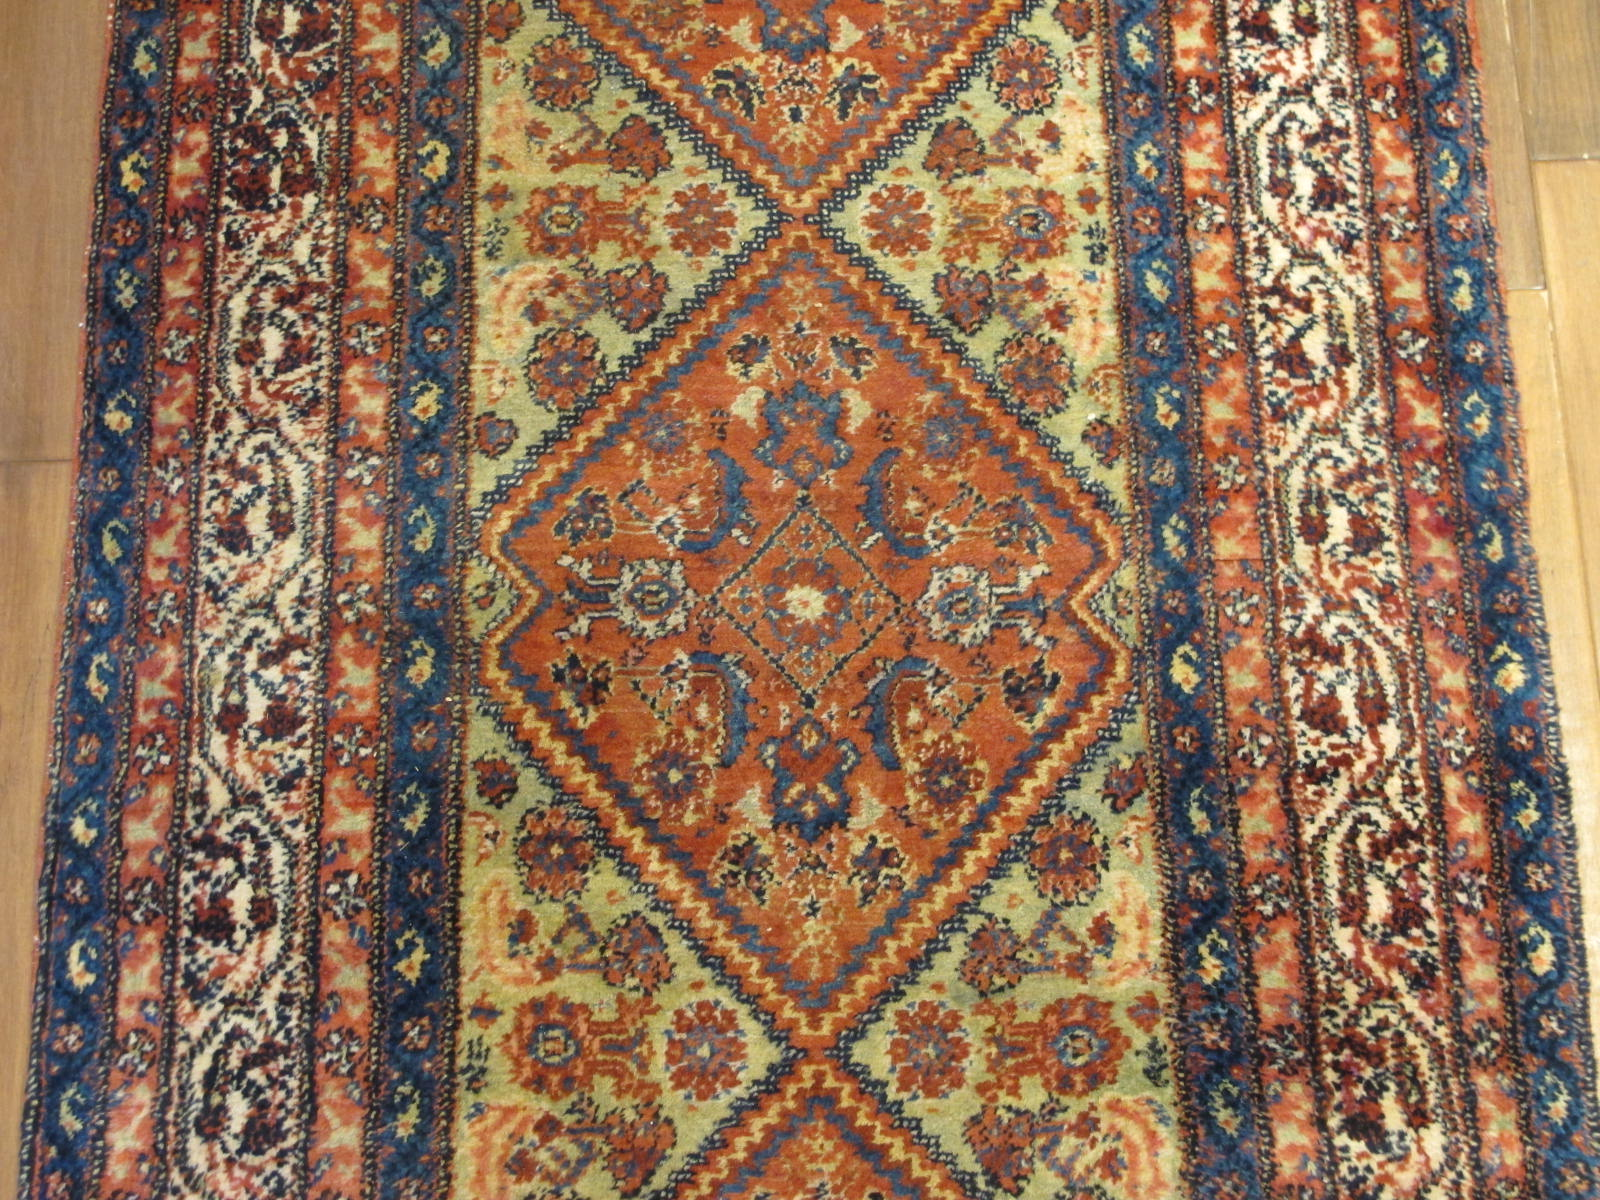 23177 persian malayer runner 3,5 x 16,4 (3)